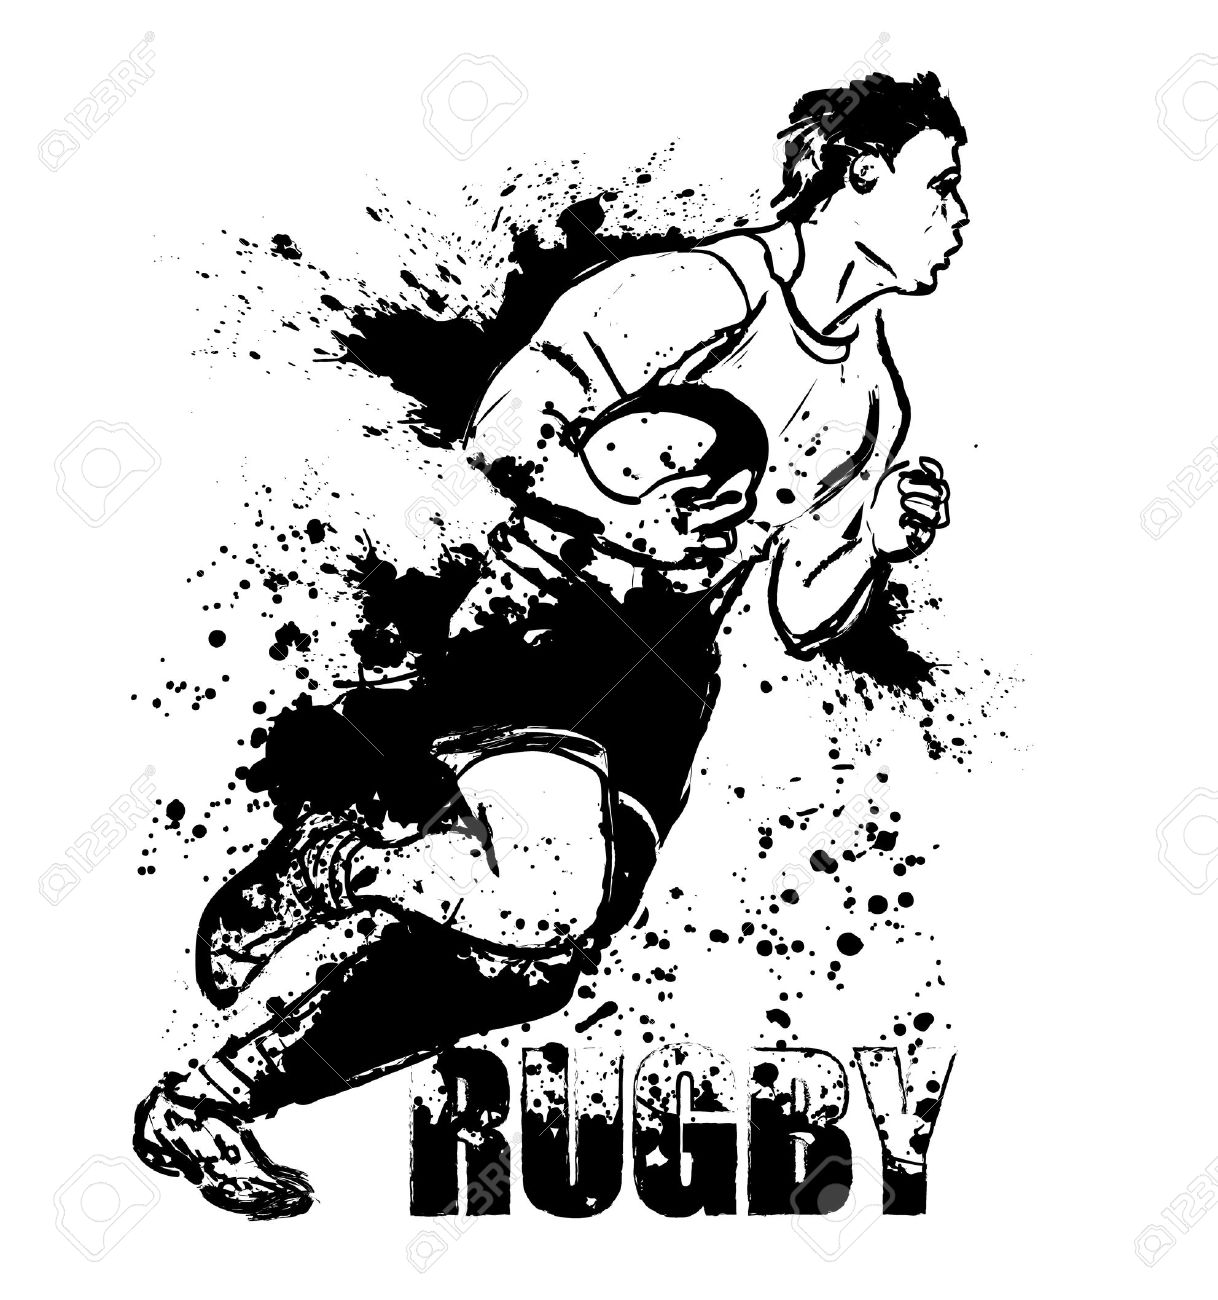 hight resolution of rugby grunge stock vector 13819106